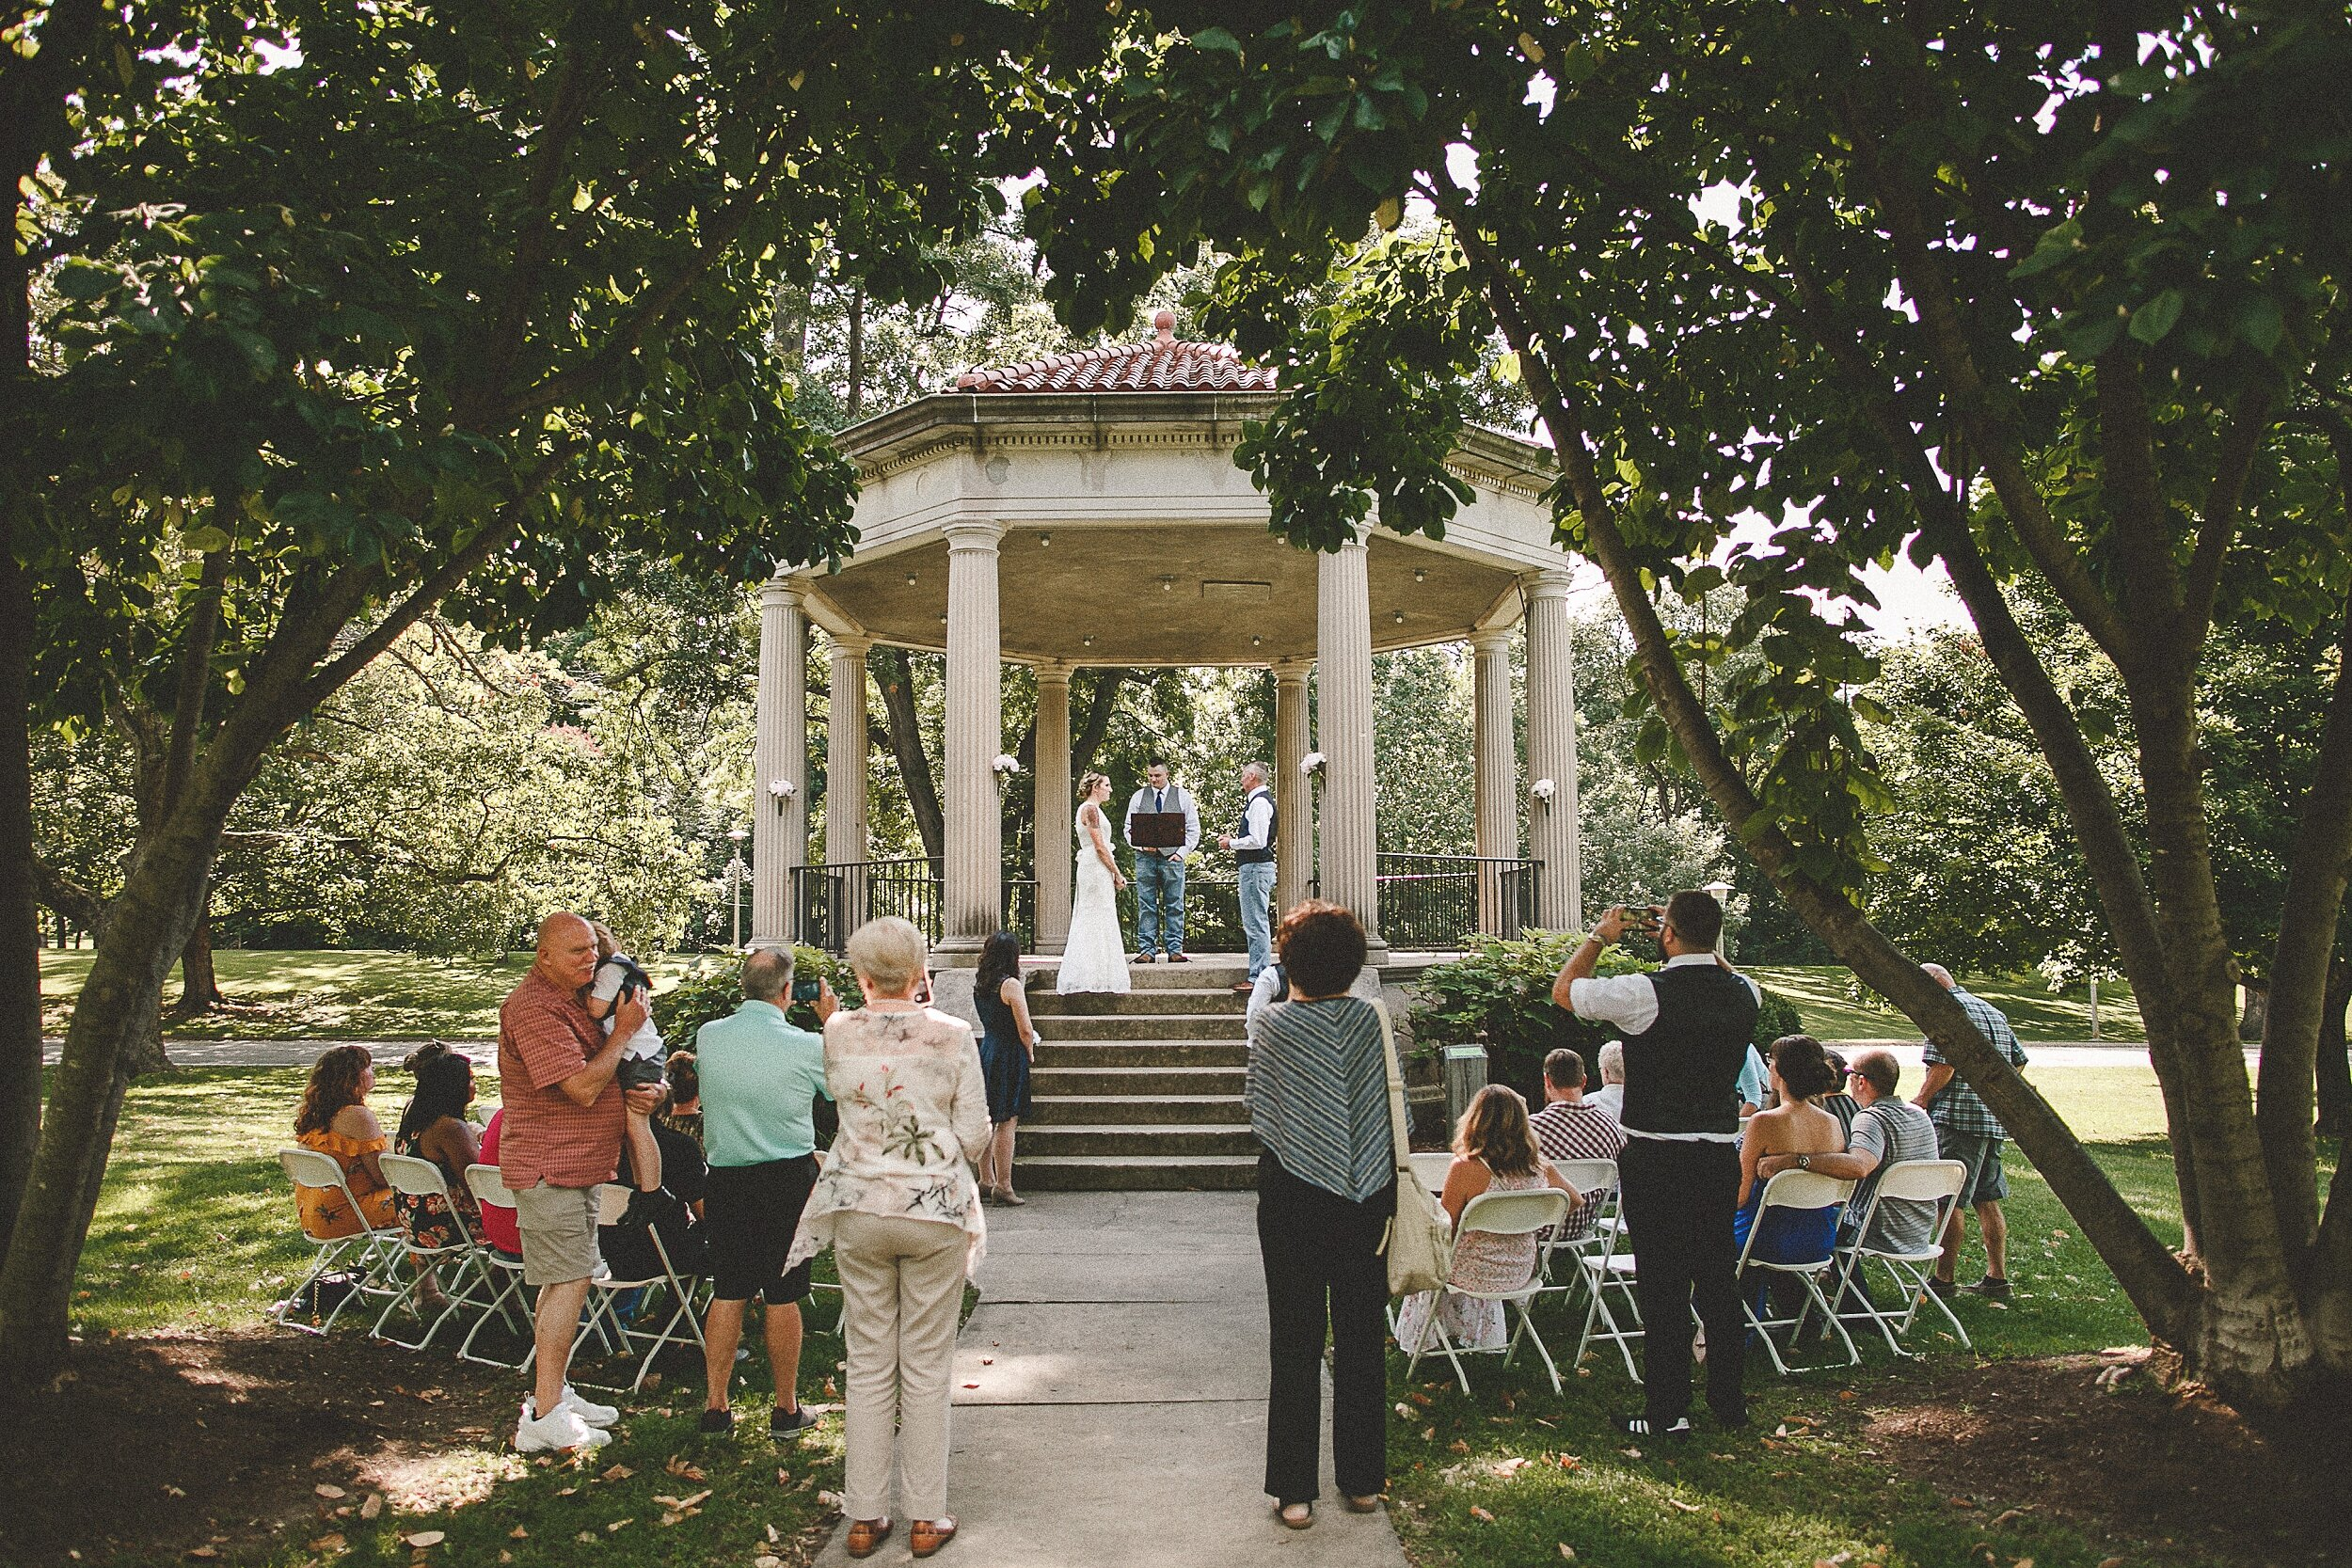 washington-park-gazebo-springfield-il-wedding-photography_0034.jpg